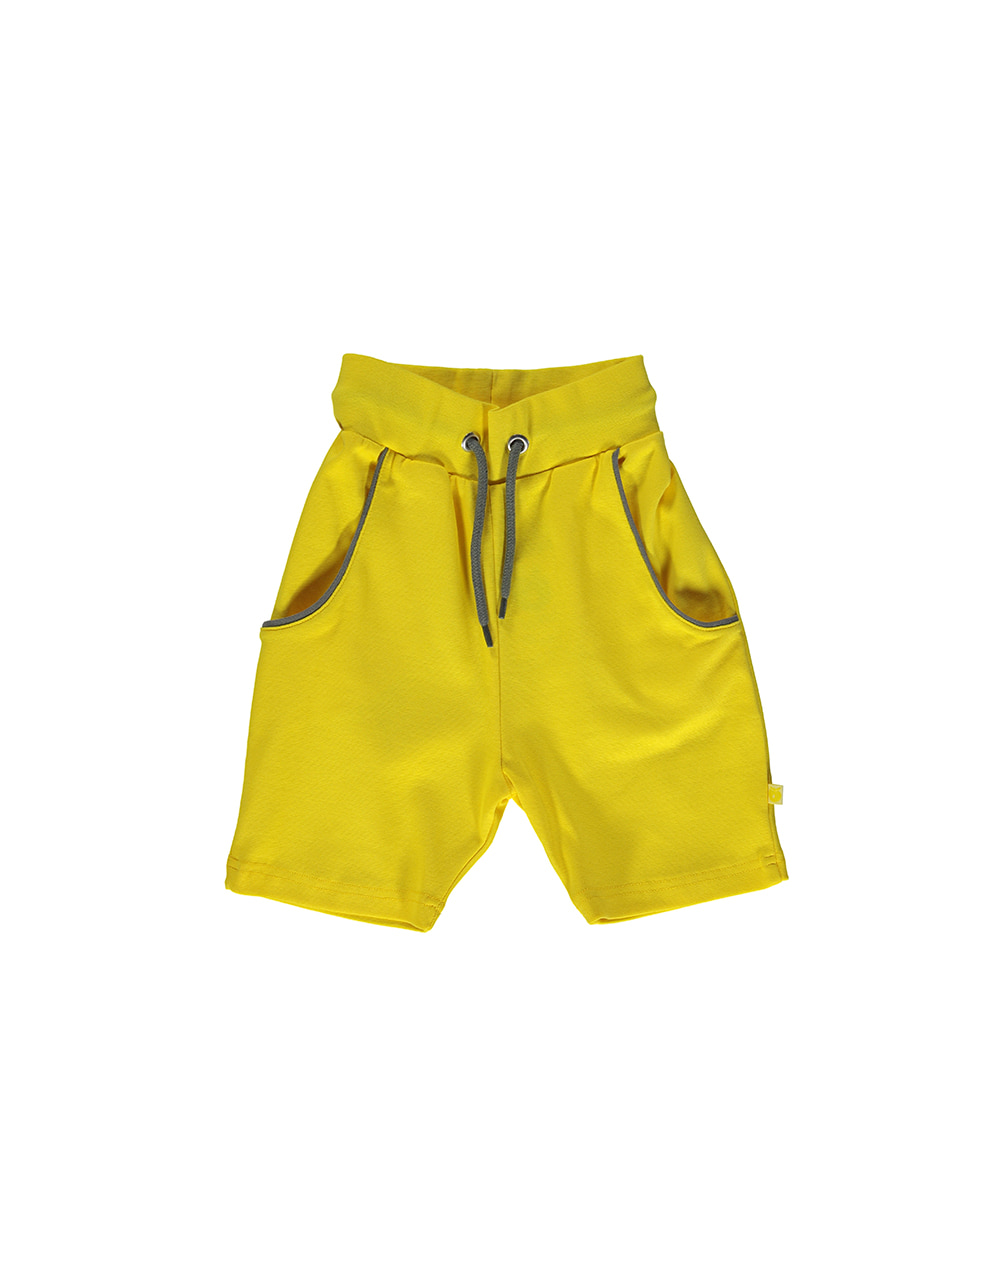 SMAFOLK Shorts solid color with Apple  Yellow